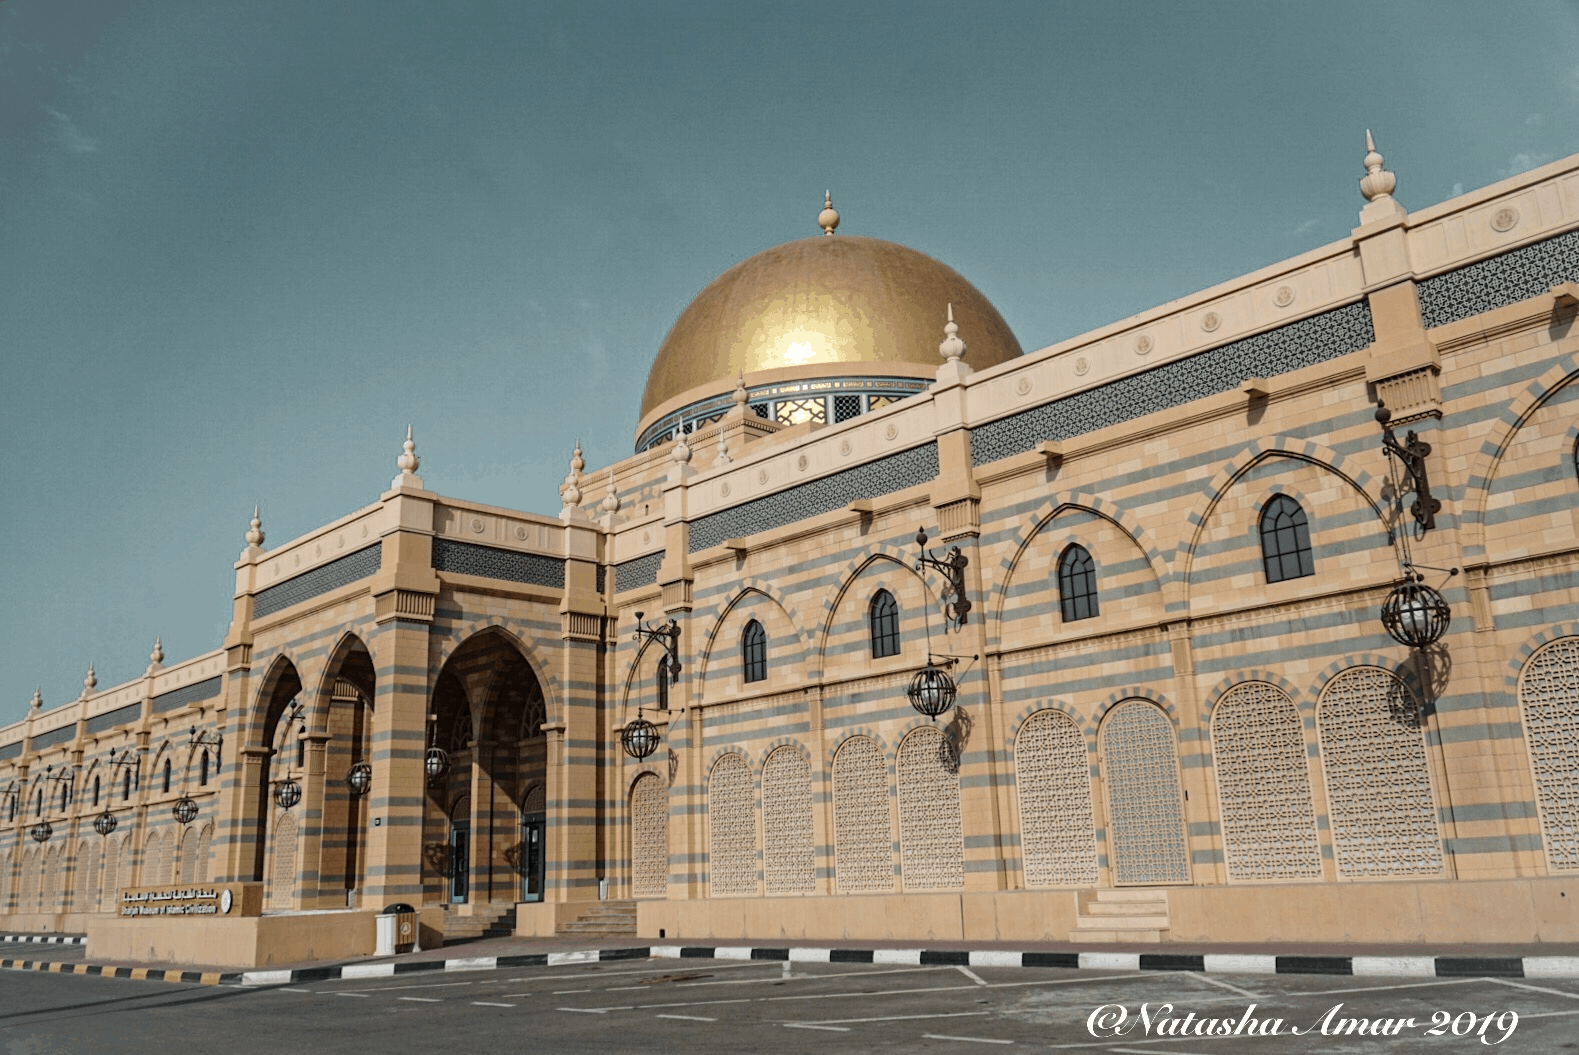 48 Hours in Sharjah: Visit the Museum of Islamic Civilization